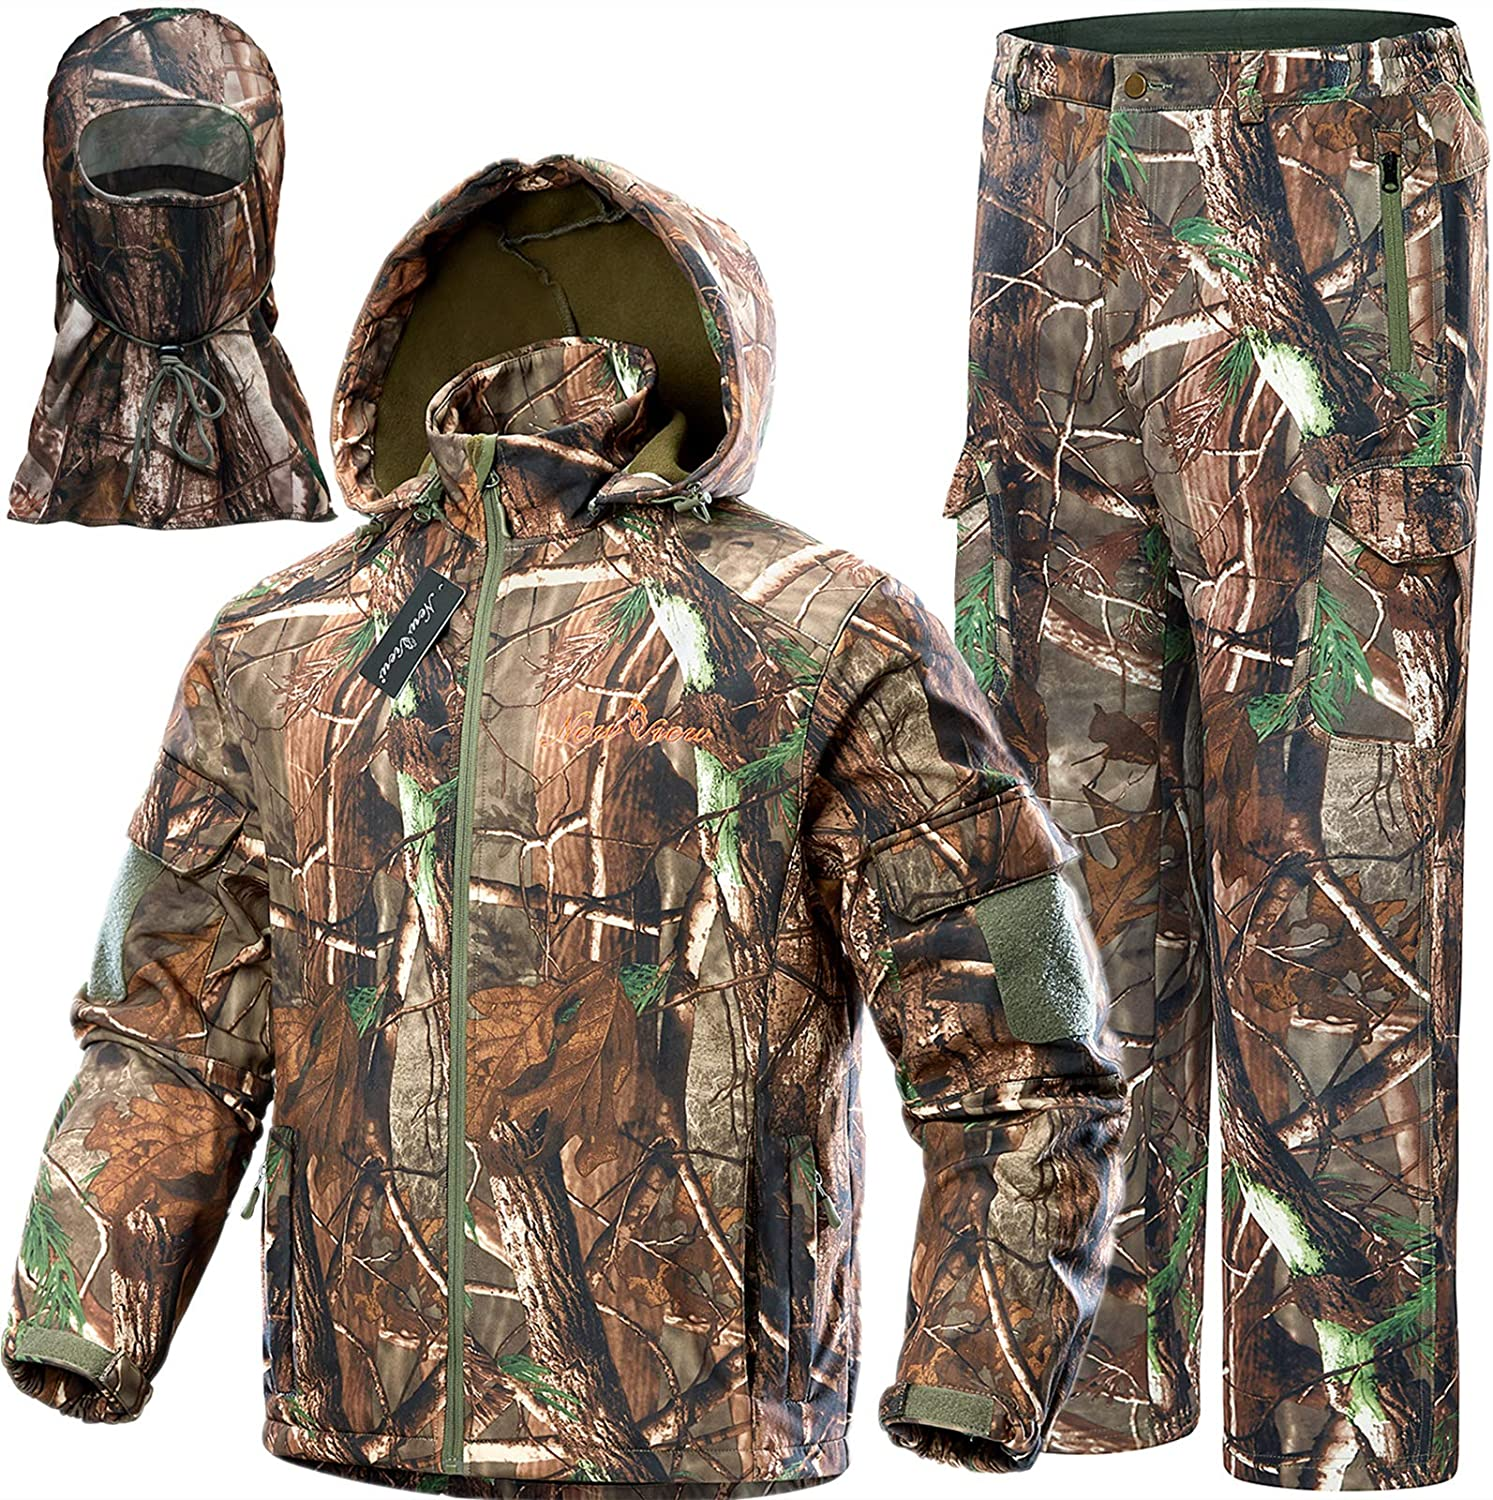 NEW VIEW Upgraded Hunting Clothes for Men,Silent Water Resistant Hunting Suits,Turkey Hunting Jacket and Pants, Hunting - Amazon Canada